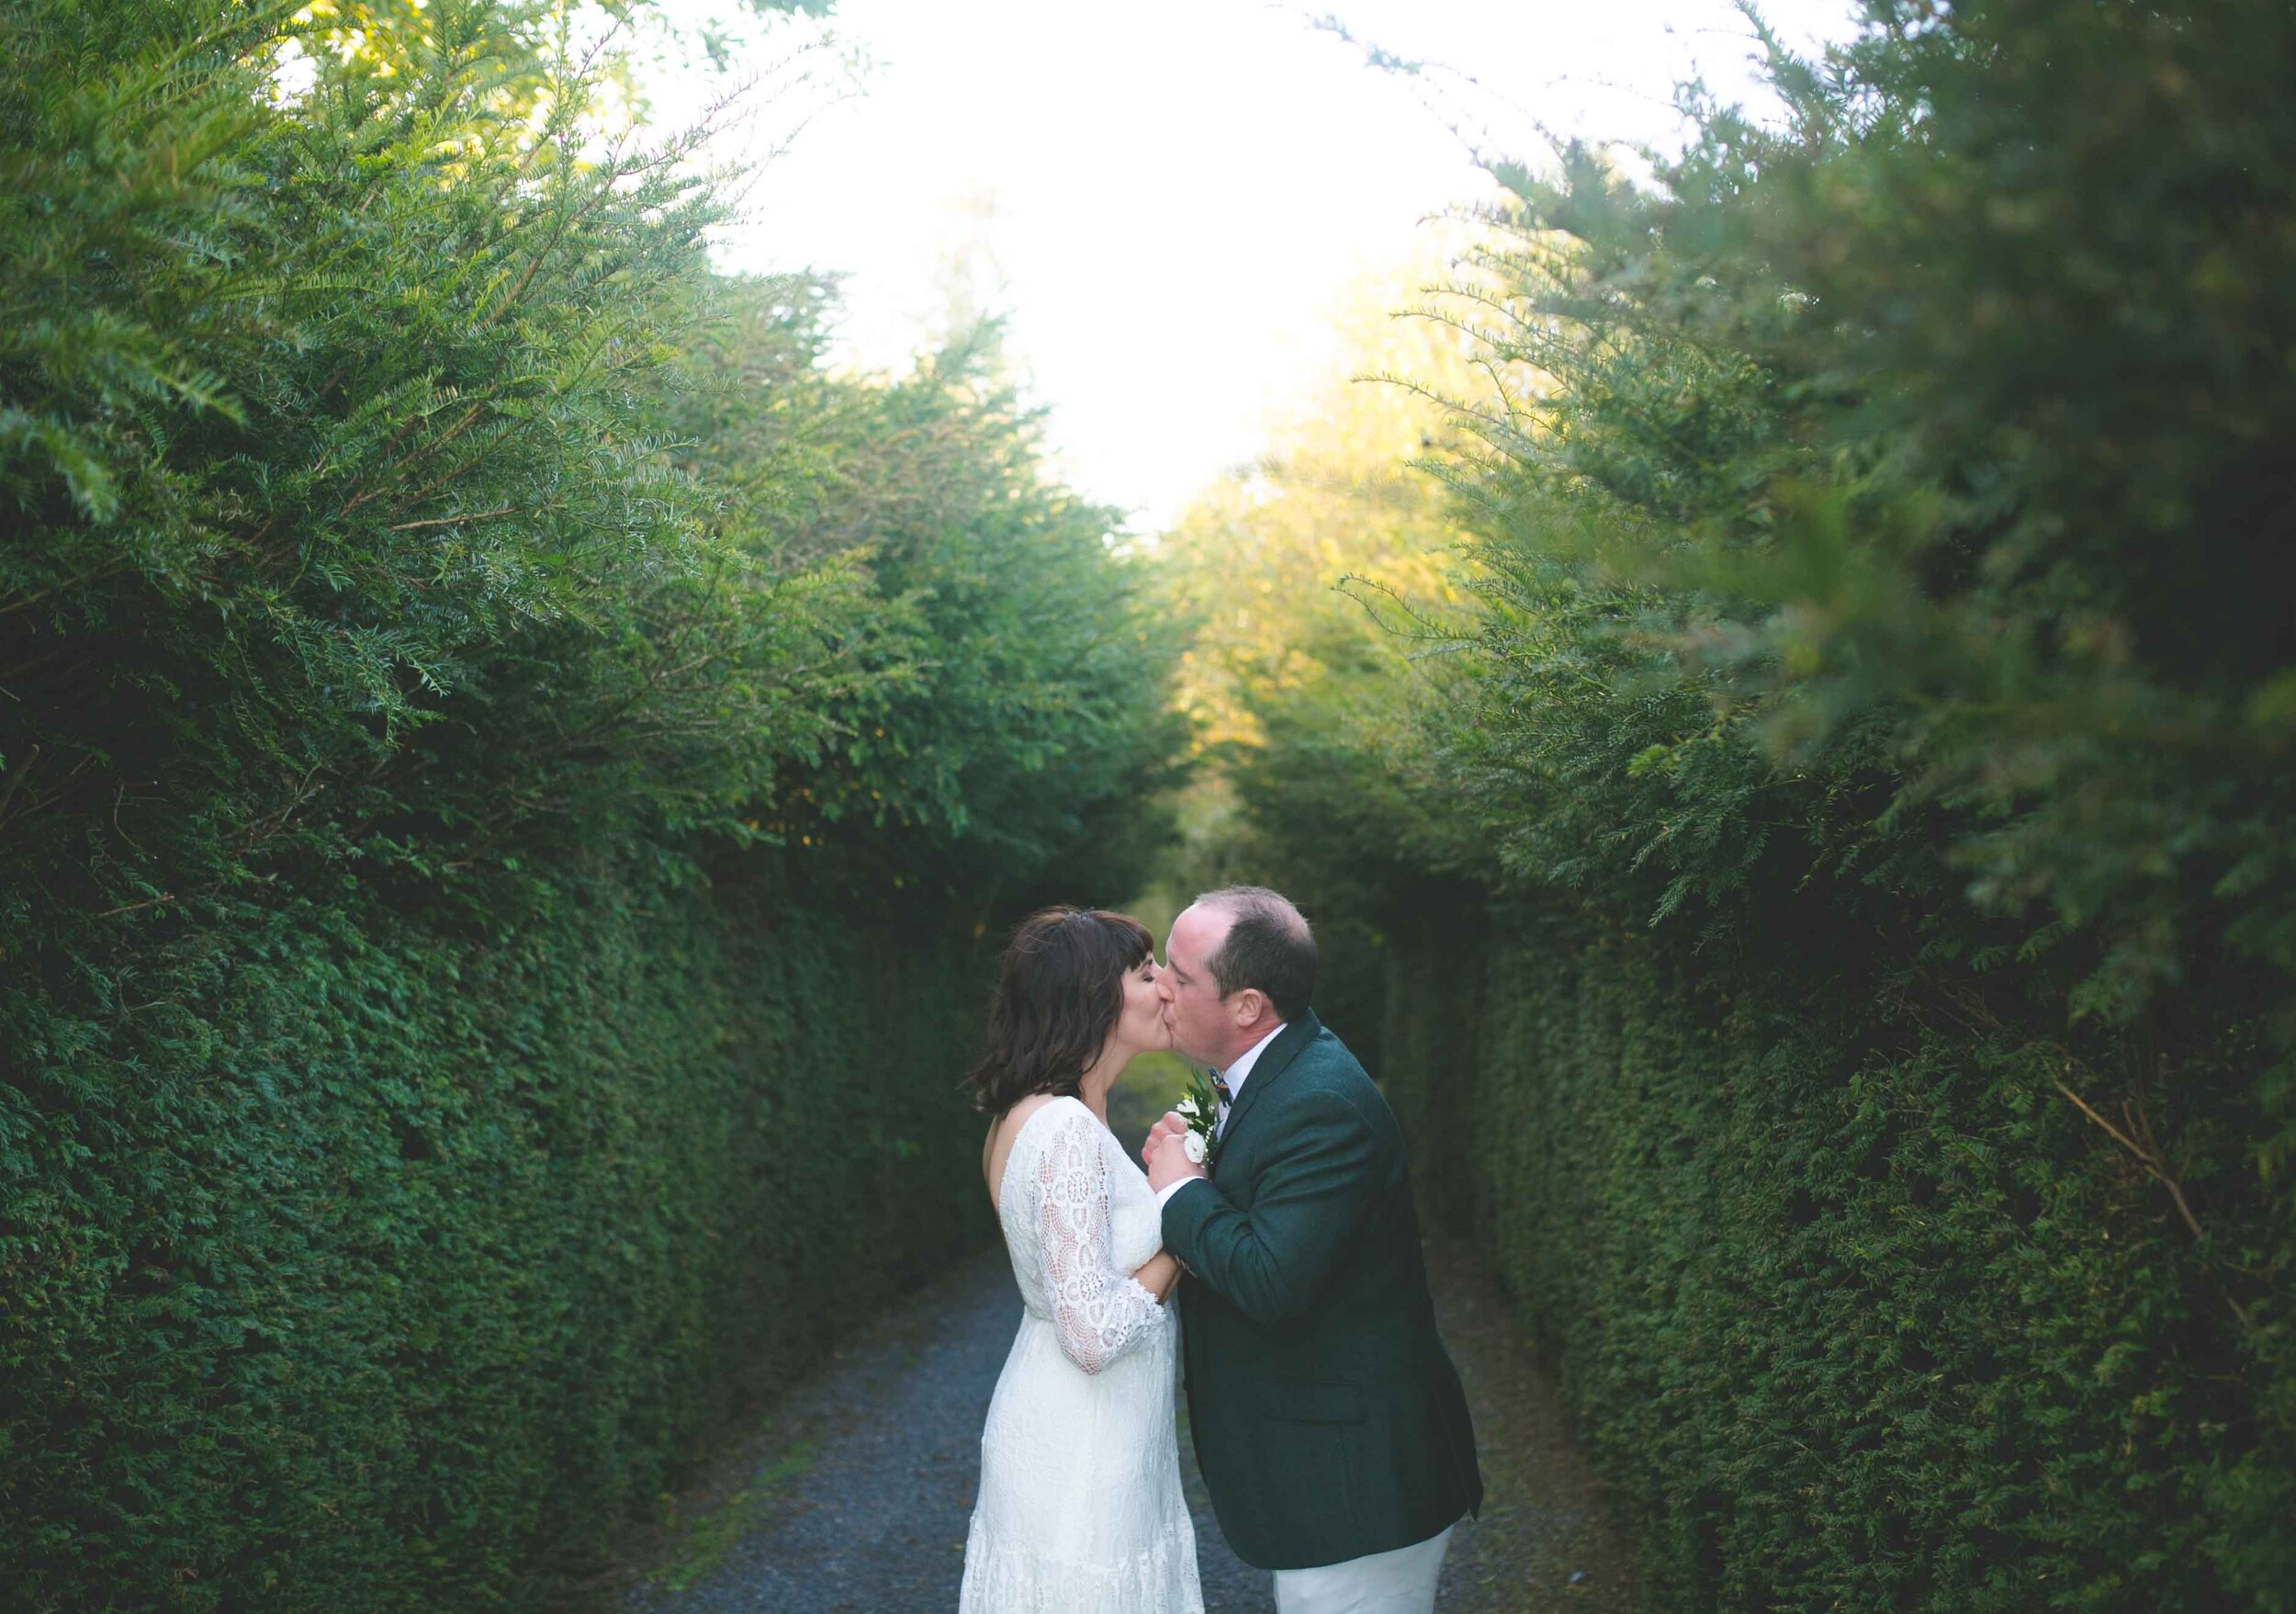 Claire & Mike-137.jpg